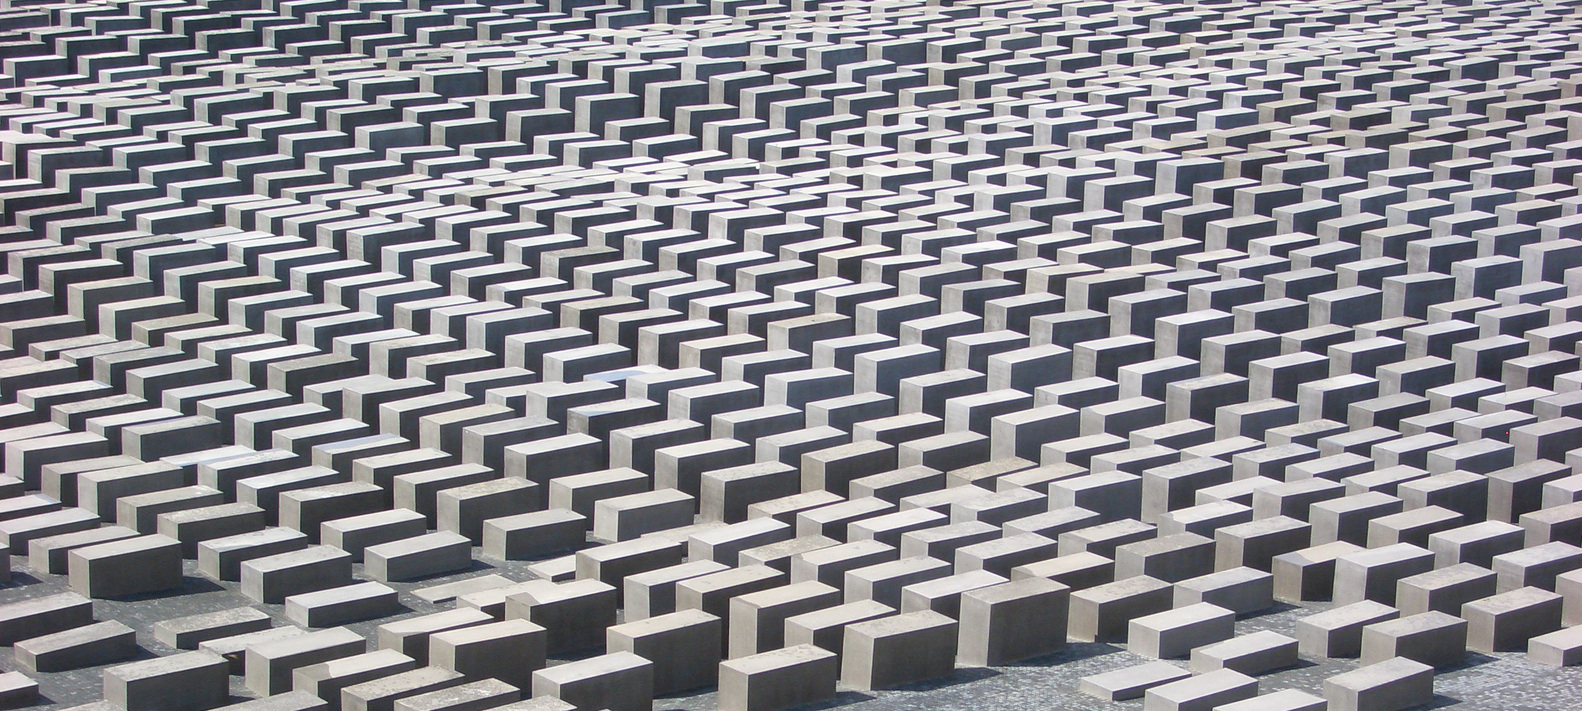 Holocaust Memorial, designed by Peter Eisenman.